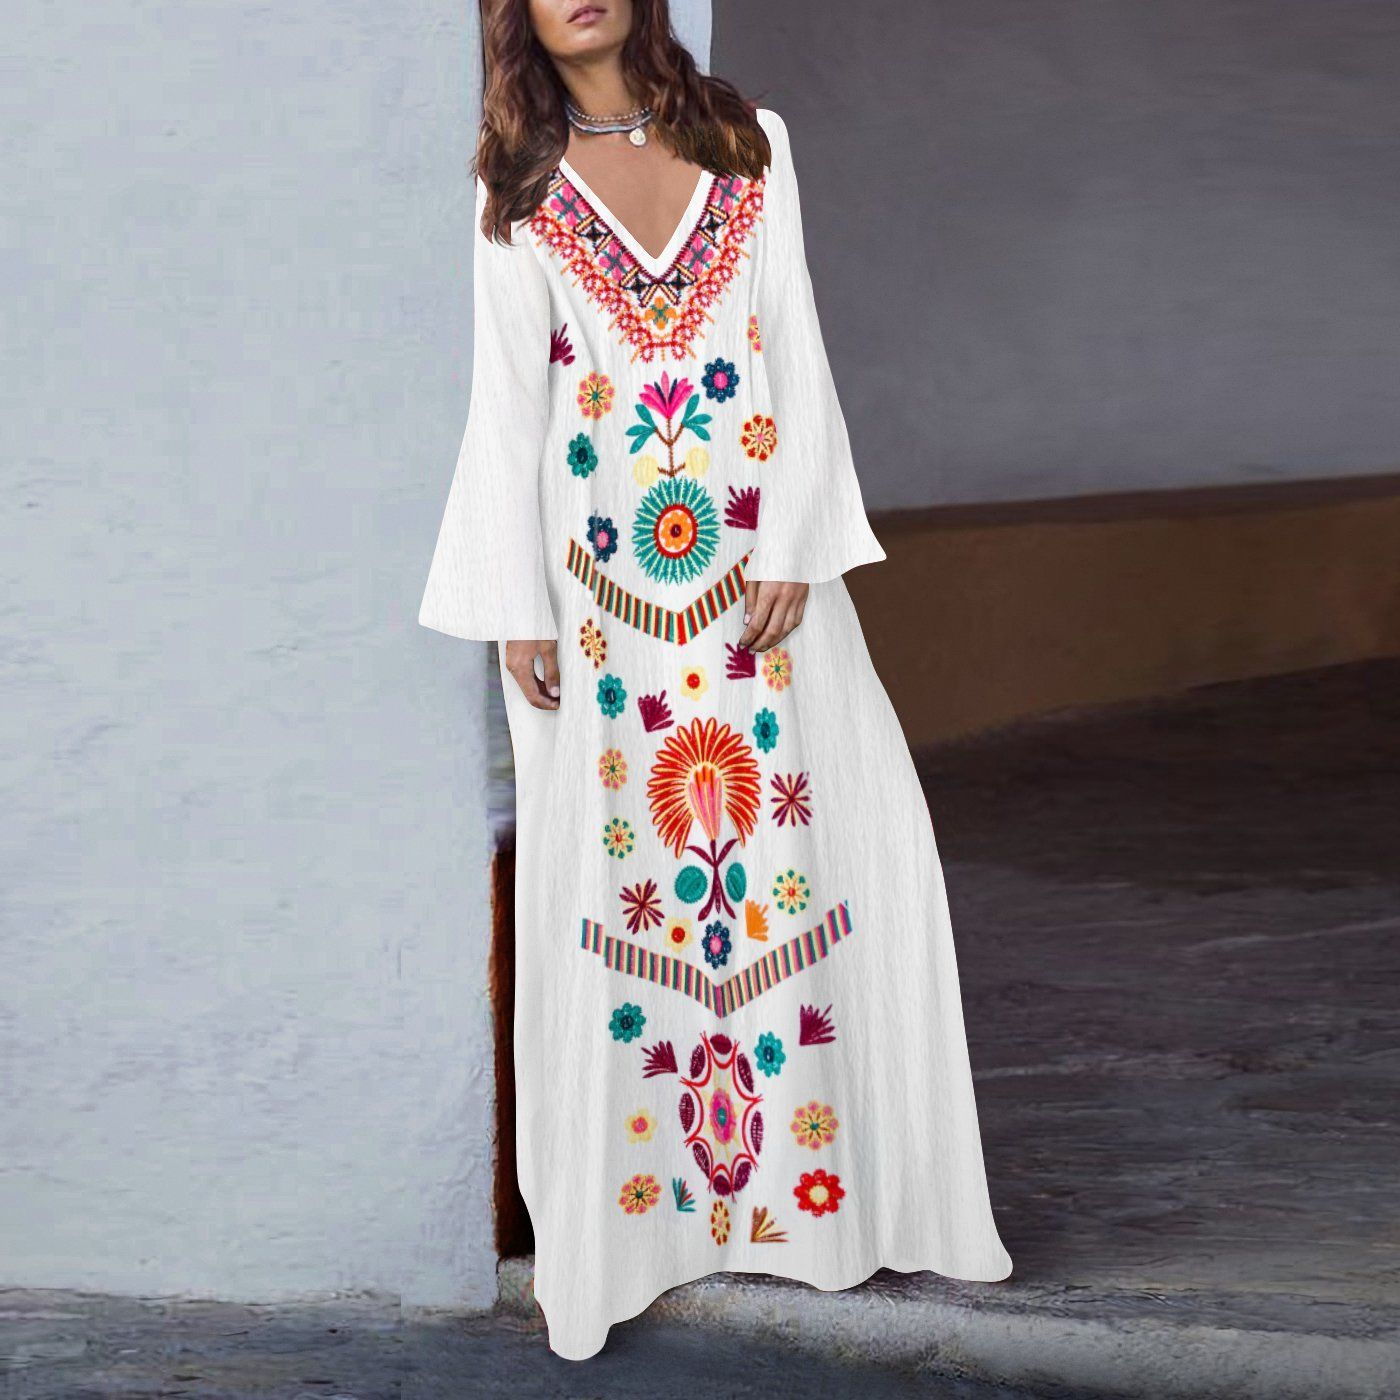 271a61ef63c New Fashion Women Floral Printed Asymmetrical Vintage Maxi Dress Ethnic  Style Long Sleeve Dress Loose Charming